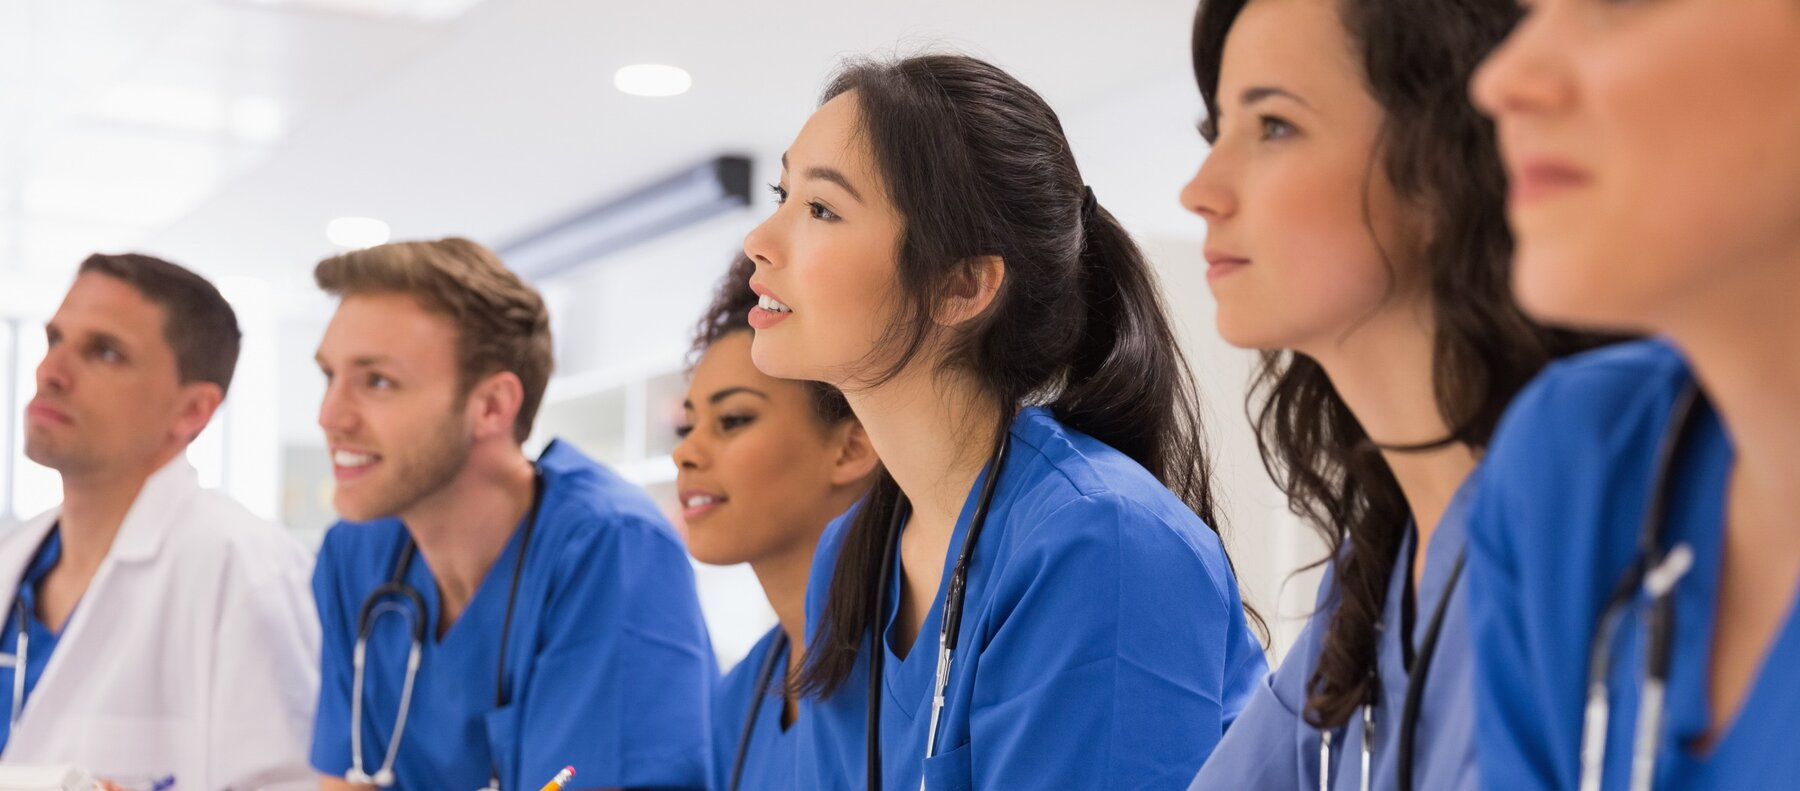 rsz_medical-students-listening-sitting-at-desk-picture-id532548555